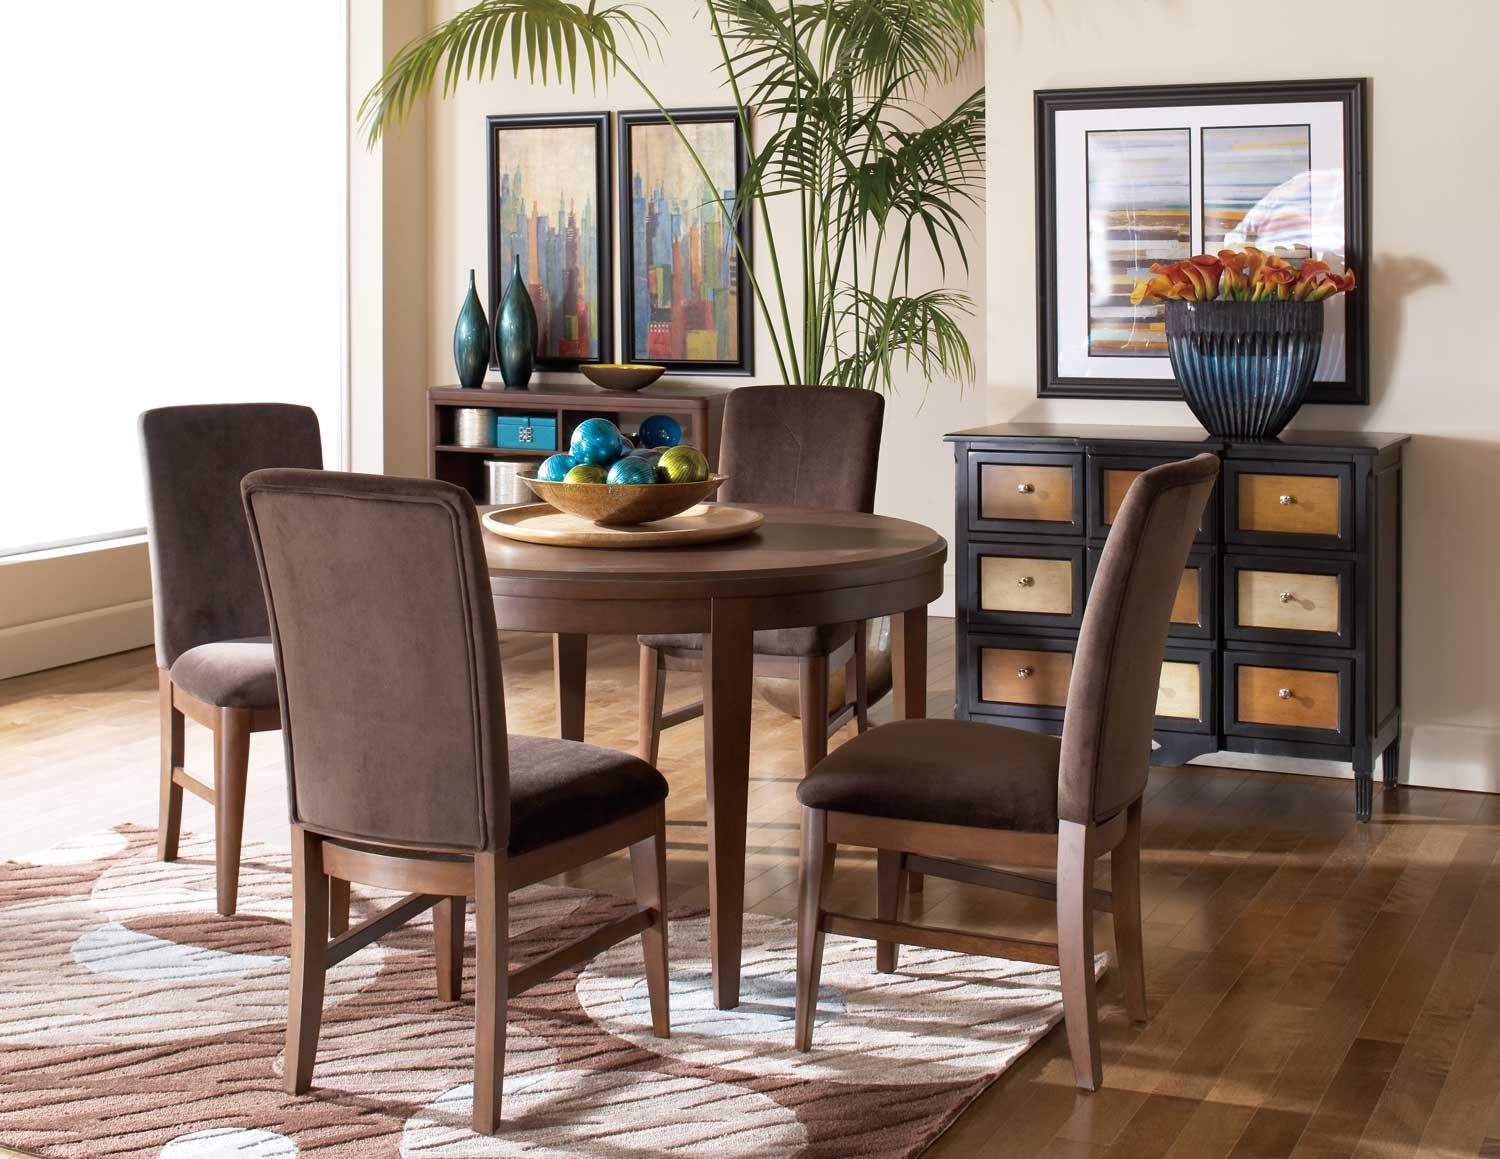 Homelegance Beaumont Round Dining Set - Brown Cherry